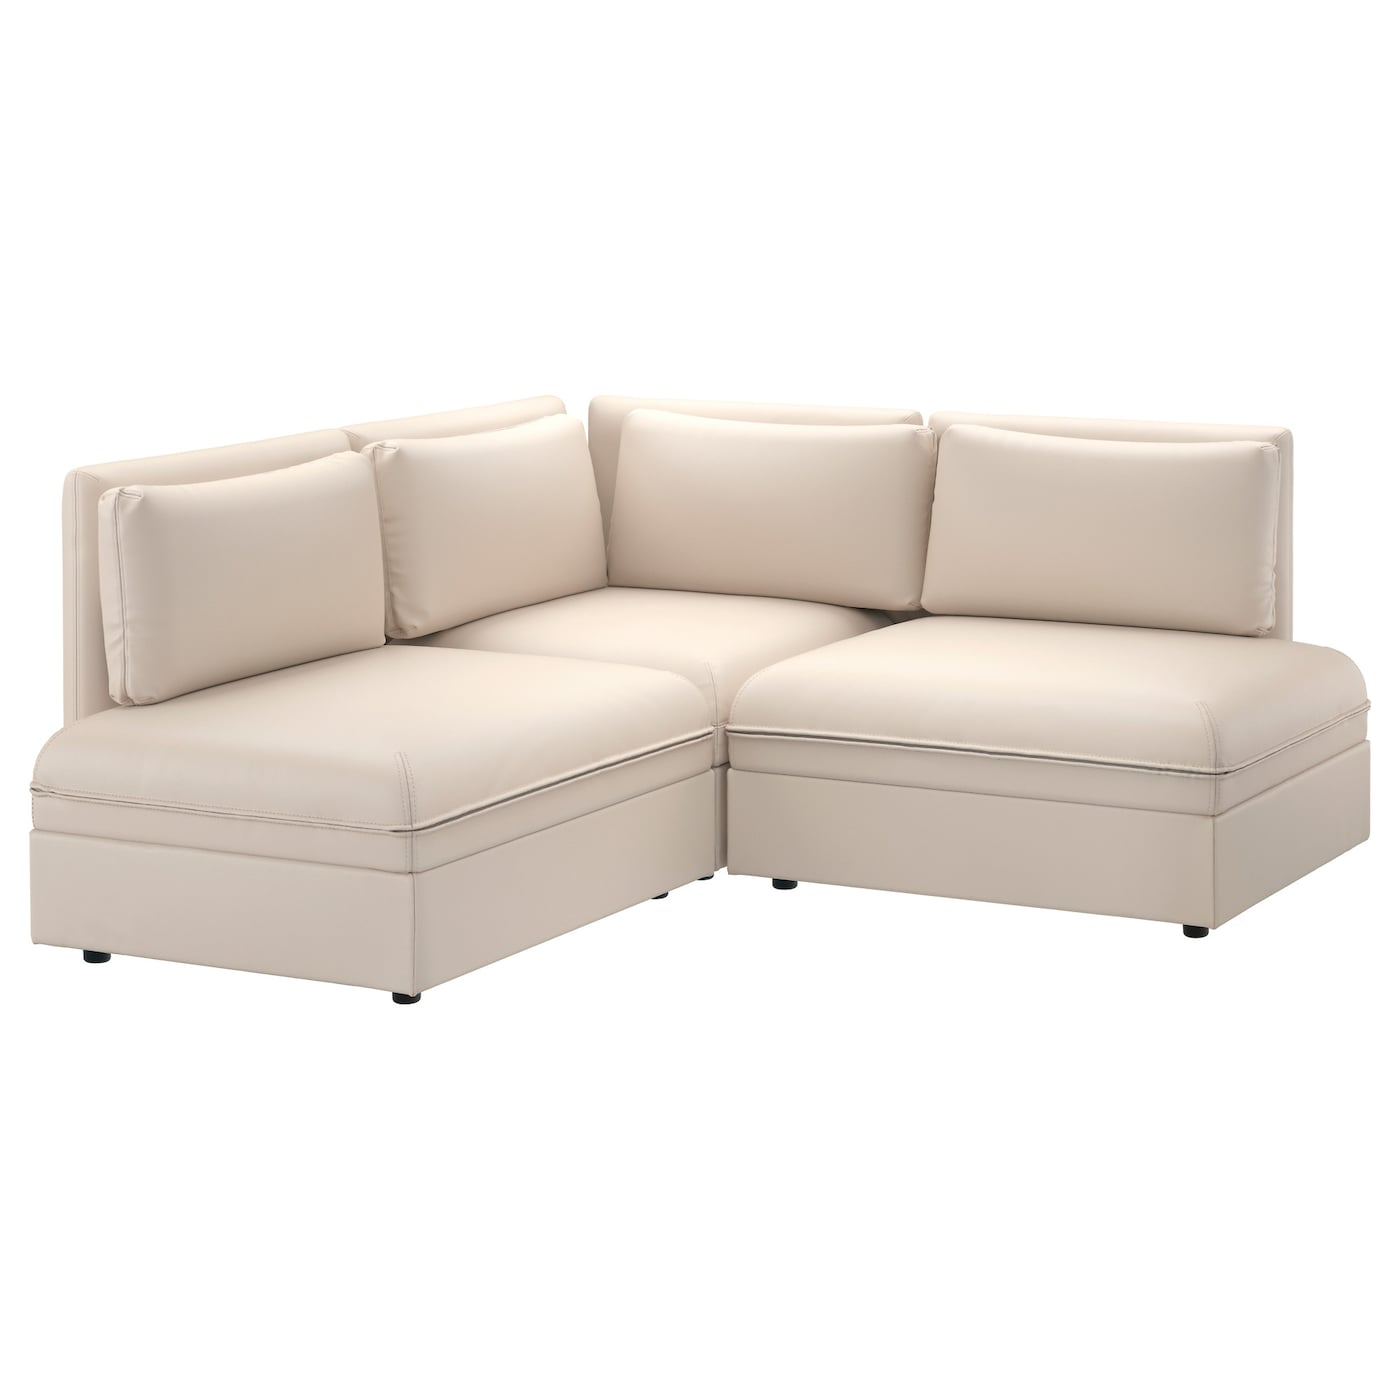 Vallentuna 3 seat corner sofa murum beige ikea for Sofa aufblasbar